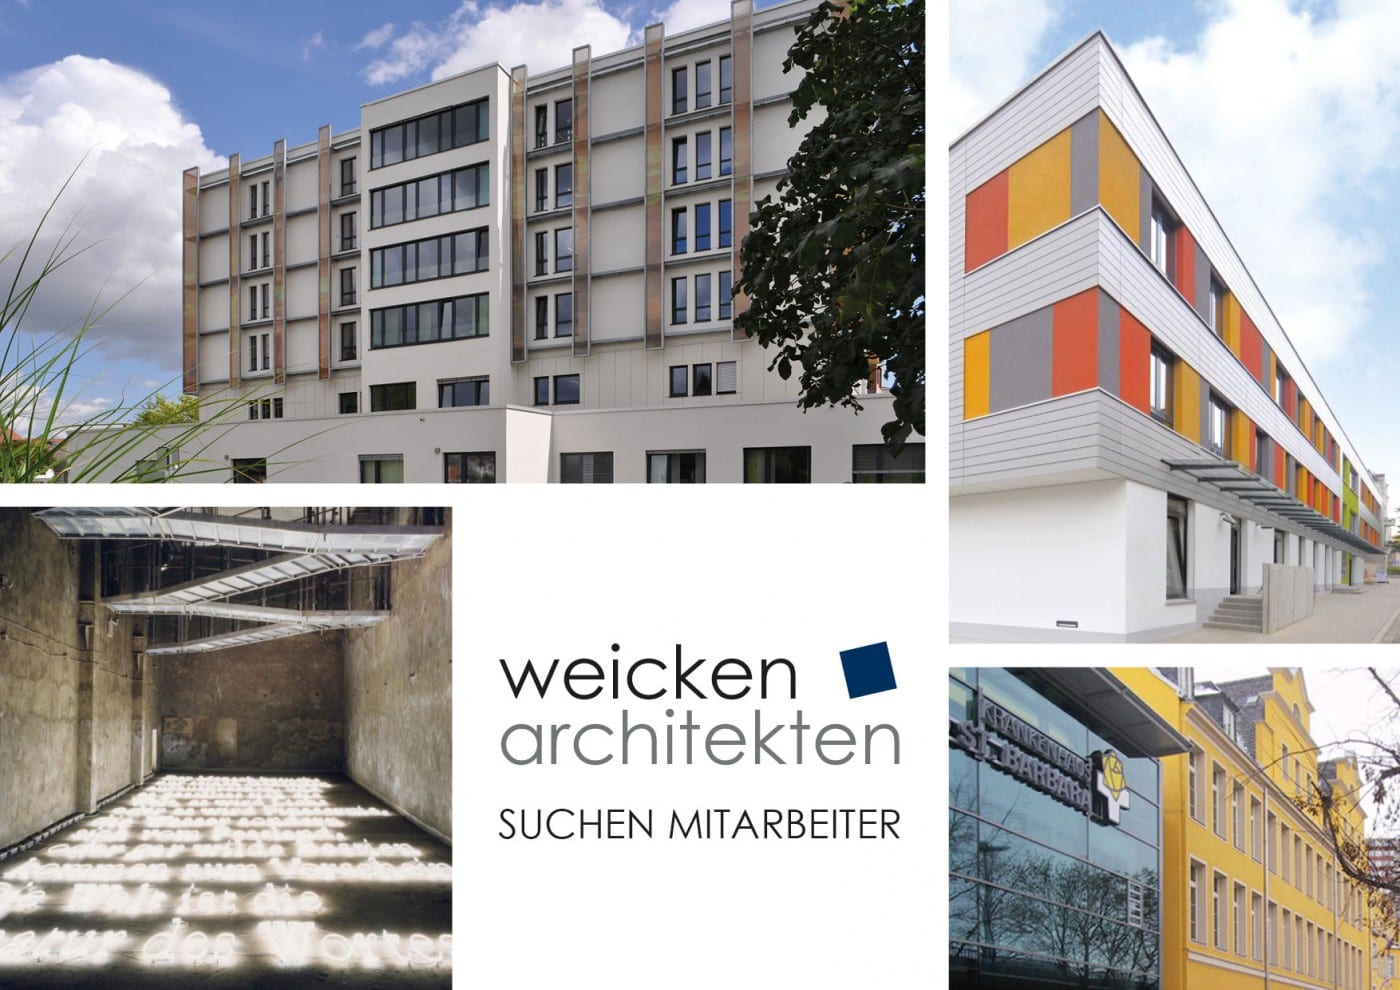 Weicken architekten in unna suchen architekten planung for Innenarchitektur unna